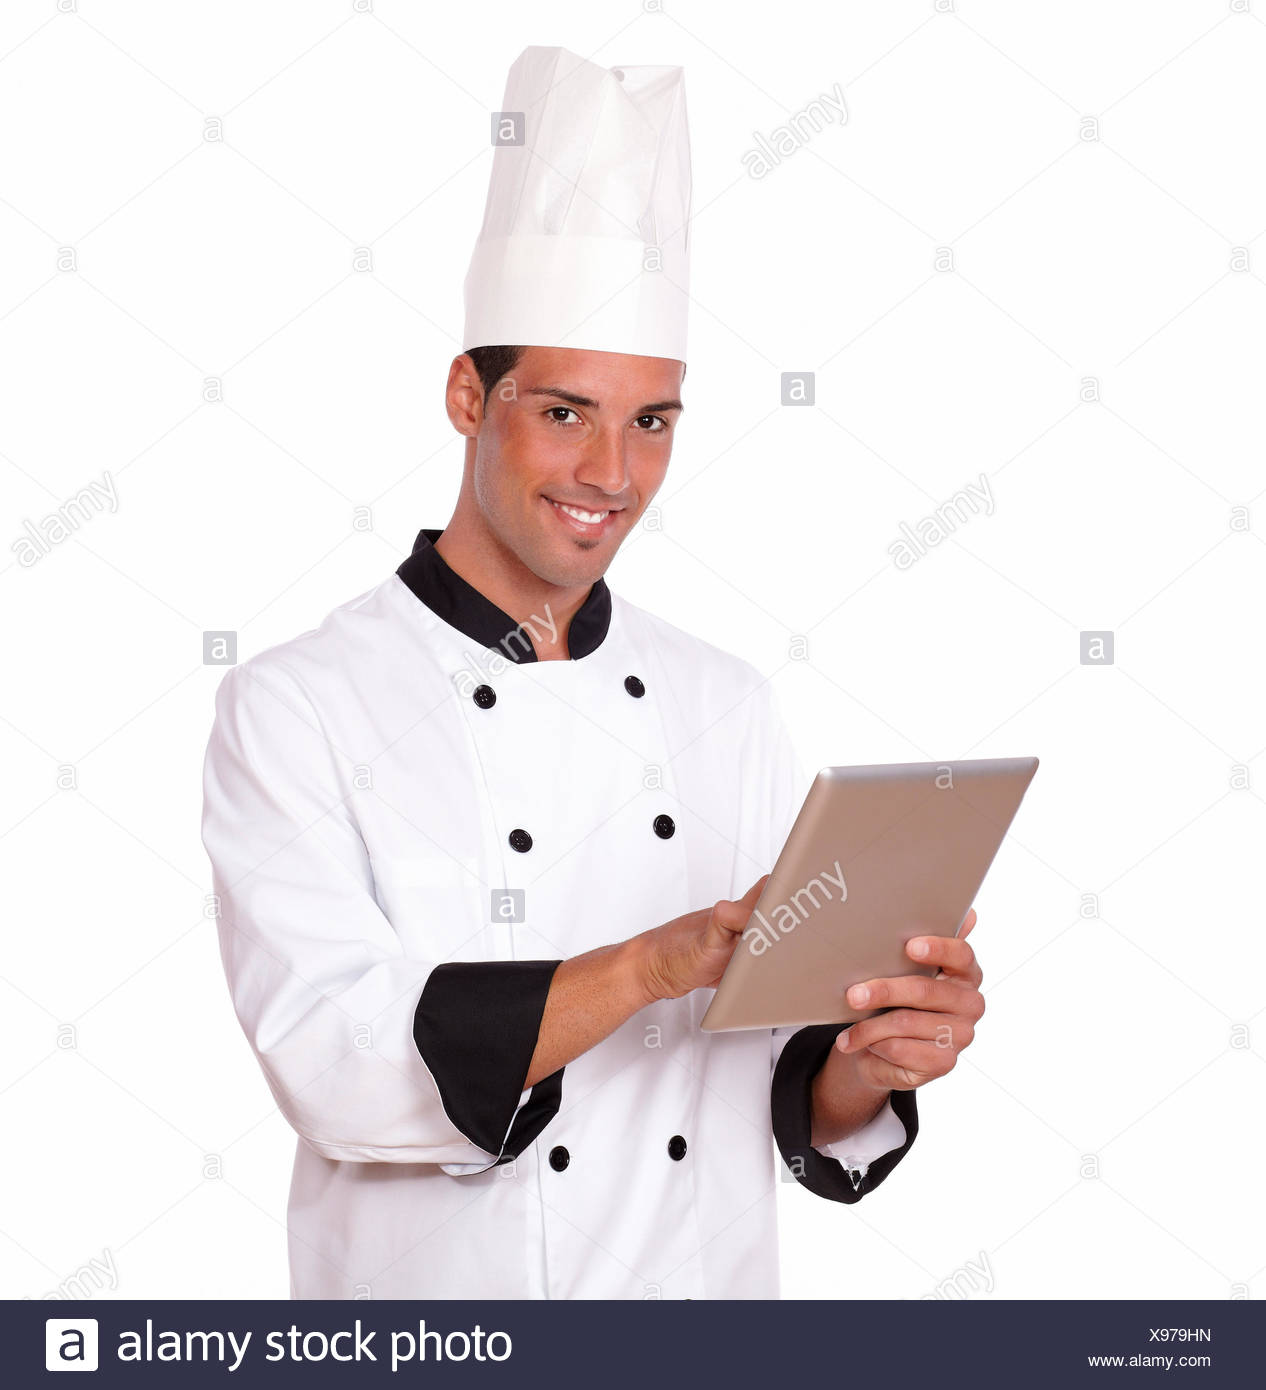 Portrait of professional 20s chef man on white uniform using his tablet pc while smiling at you on isolated studio. - Stock Image